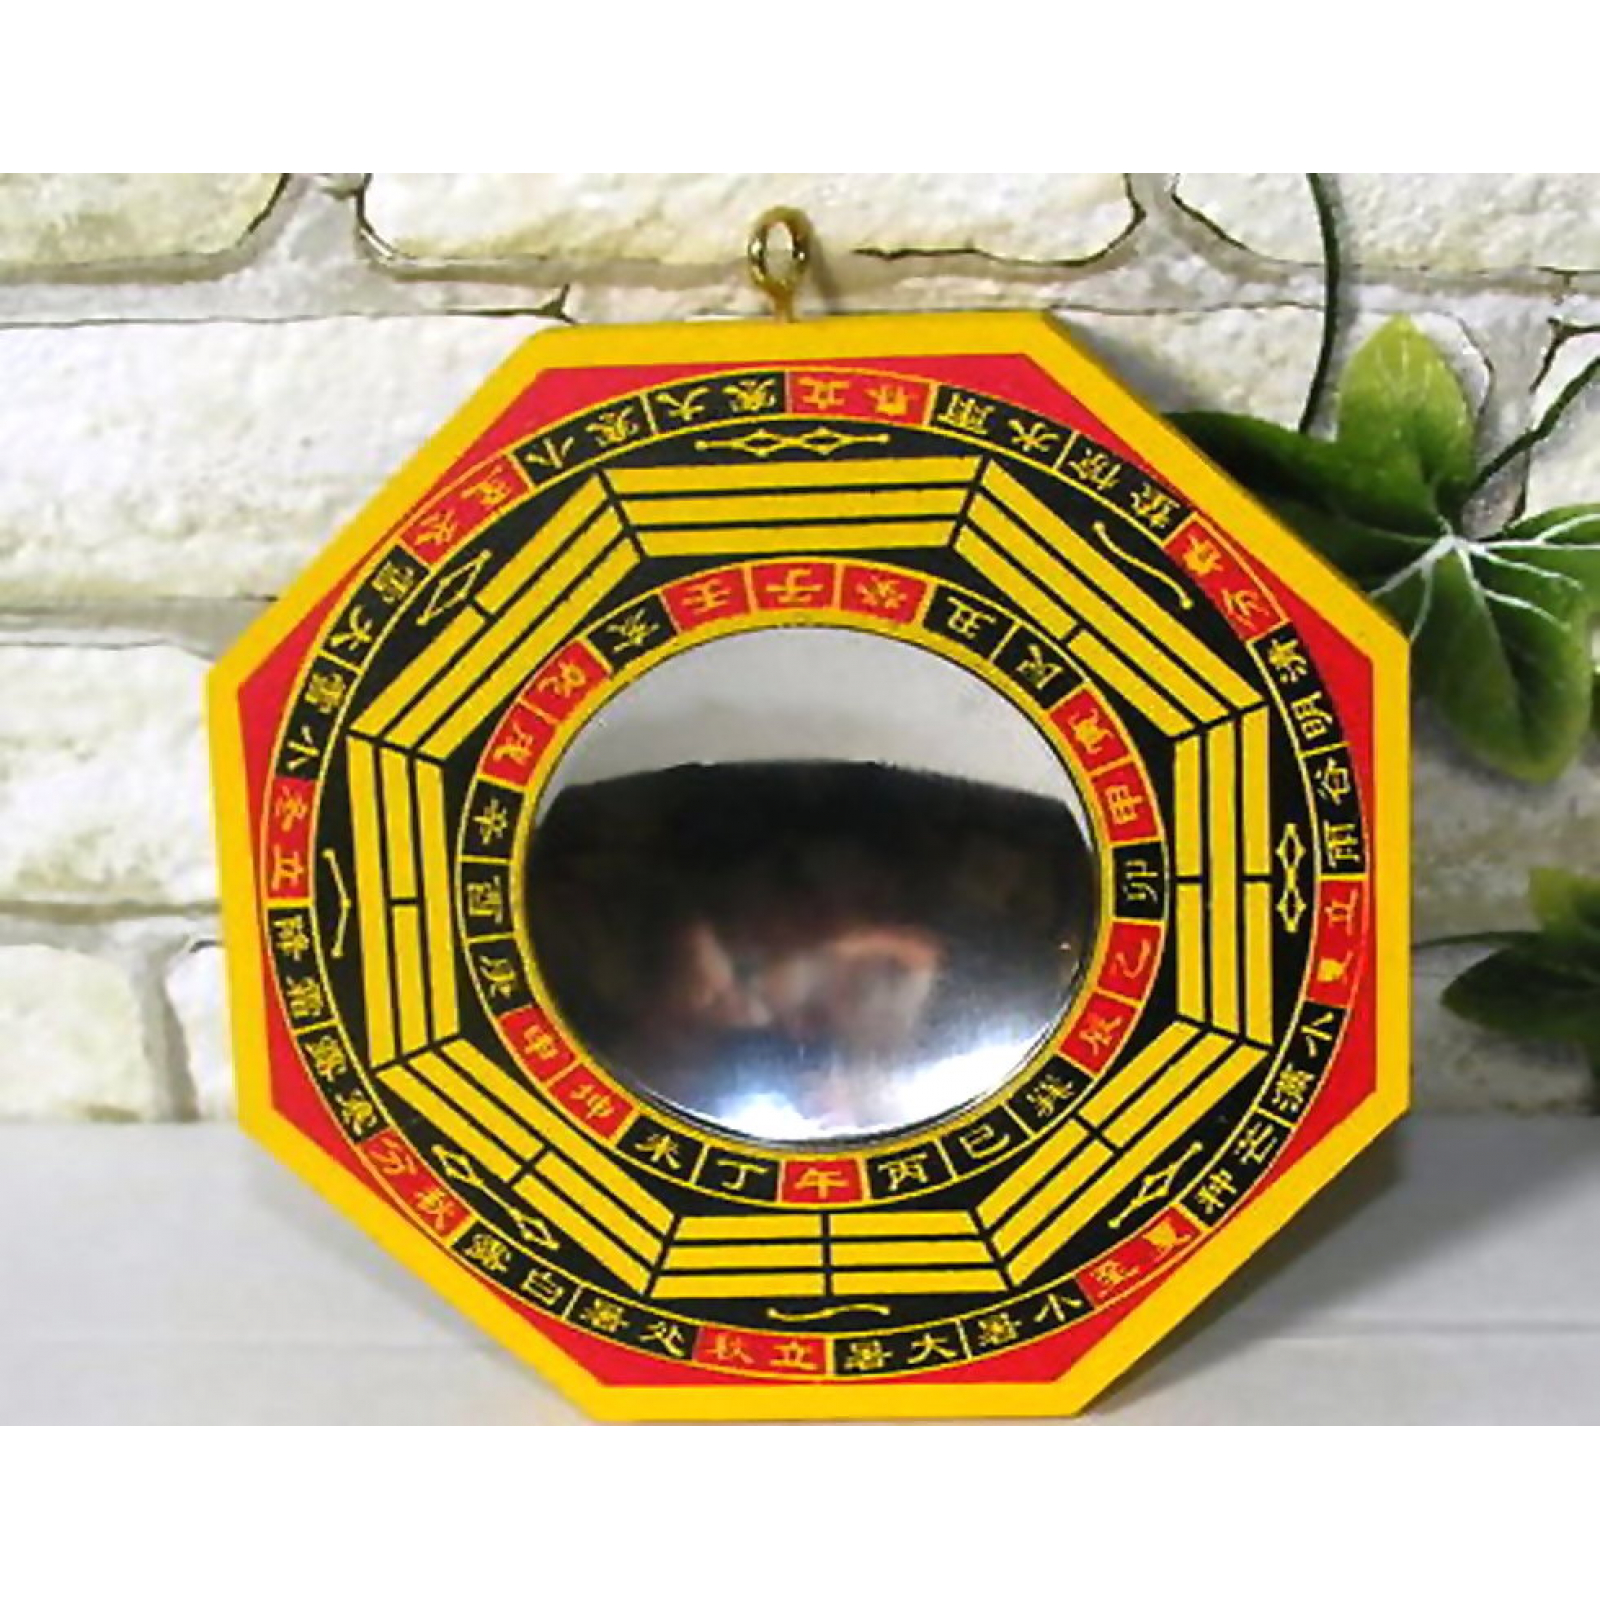 bagua miroir concave env 10 5cm bois feng shui traditionnel bouclier chine ebay. Black Bedroom Furniture Sets. Home Design Ideas